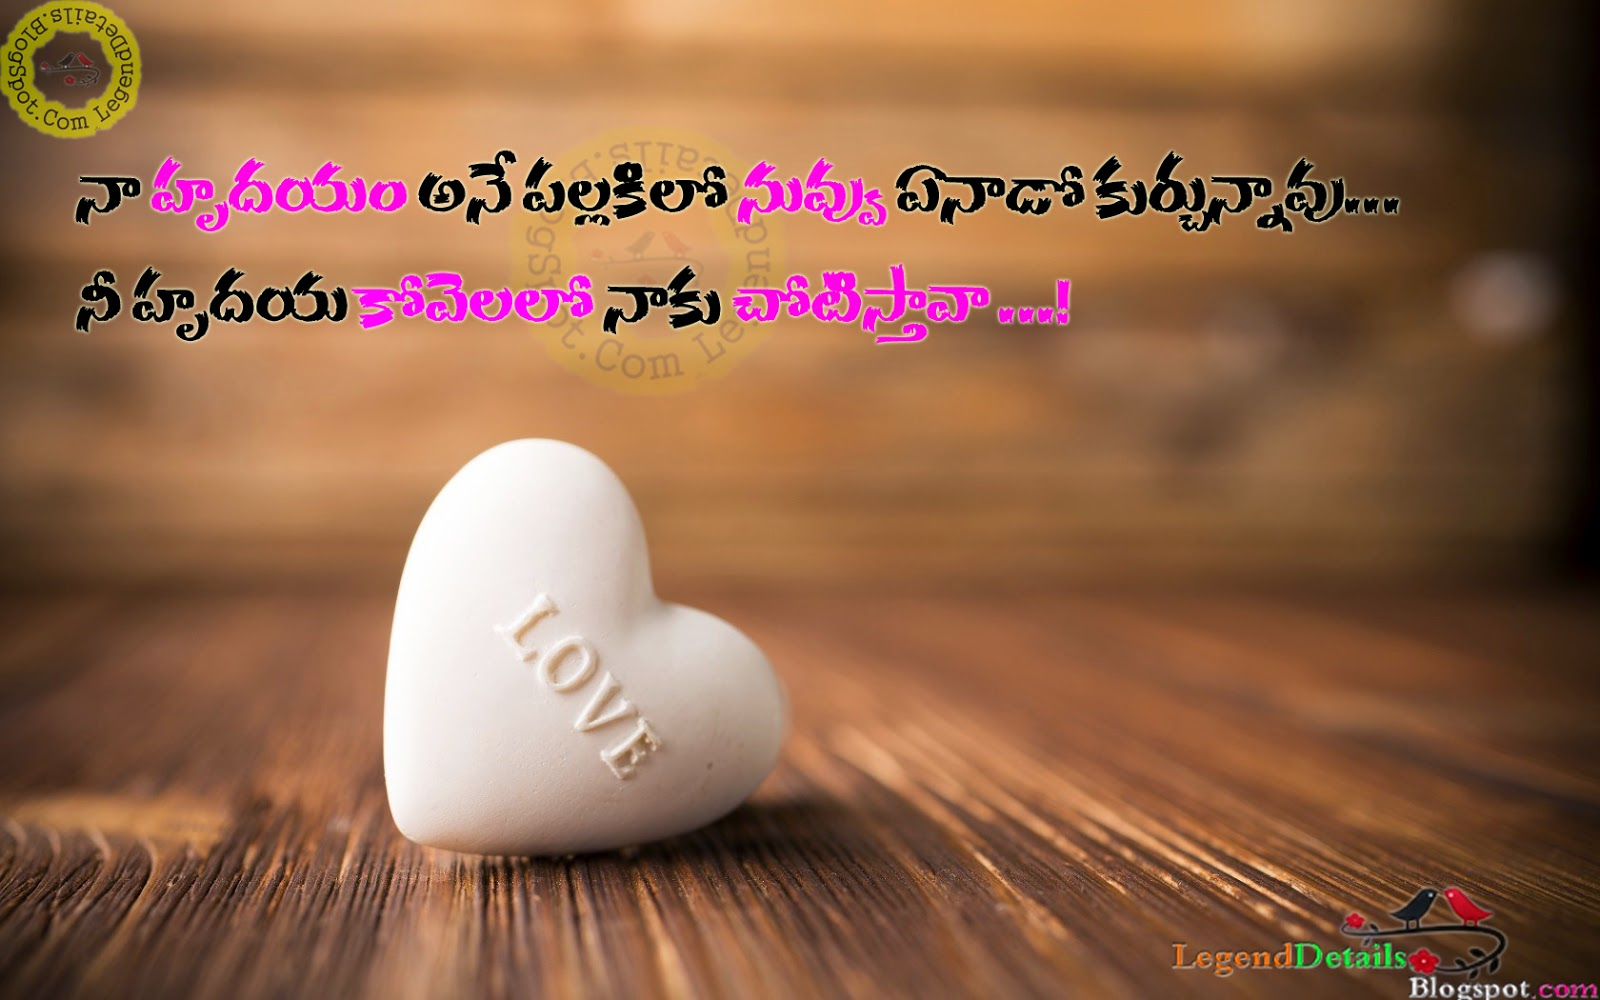 Telugu Love Quotes Impressive Telugu Love Sms With Hd Images  Heart Touching Telugu Love Sms